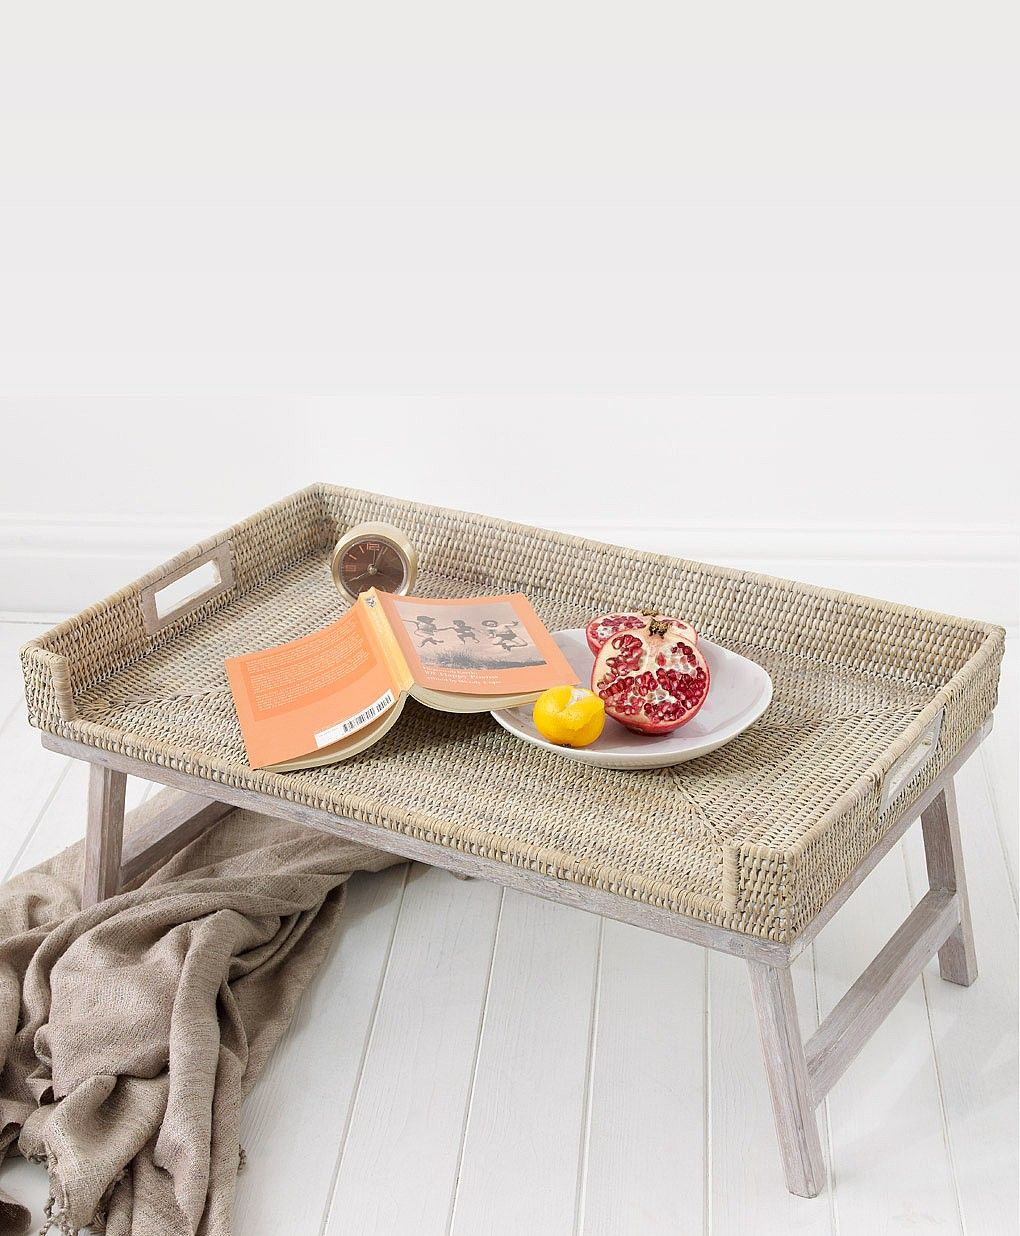 Breakfast Trays For Bed Endearing Rattan Breakfast Tray  Breakfast Tray Rattan And Trays Inspiration